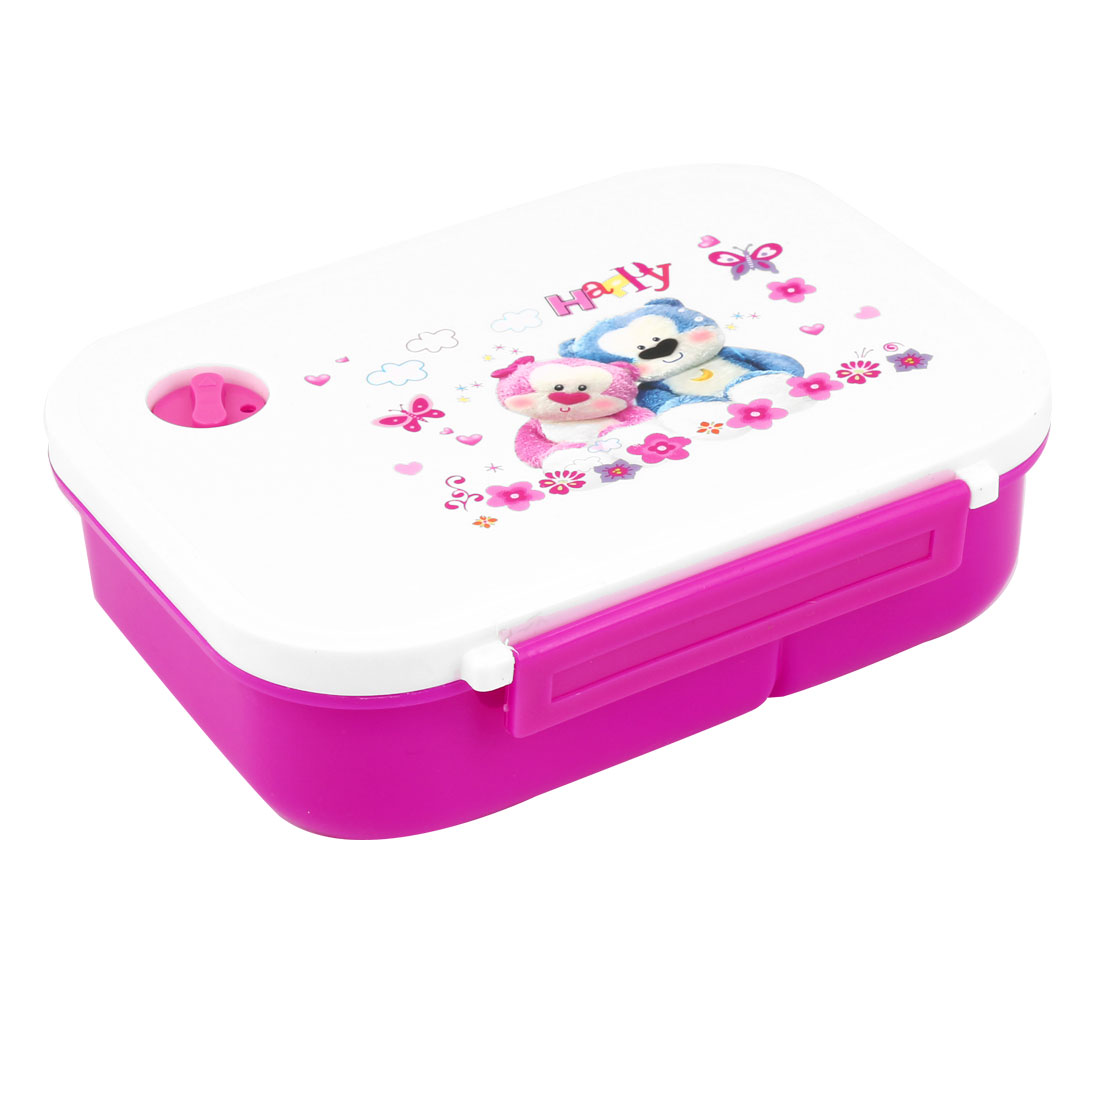 Household Plastic Spoon Rectangle Plastic Outdoor Dinner Lunch Box Fuchsia White